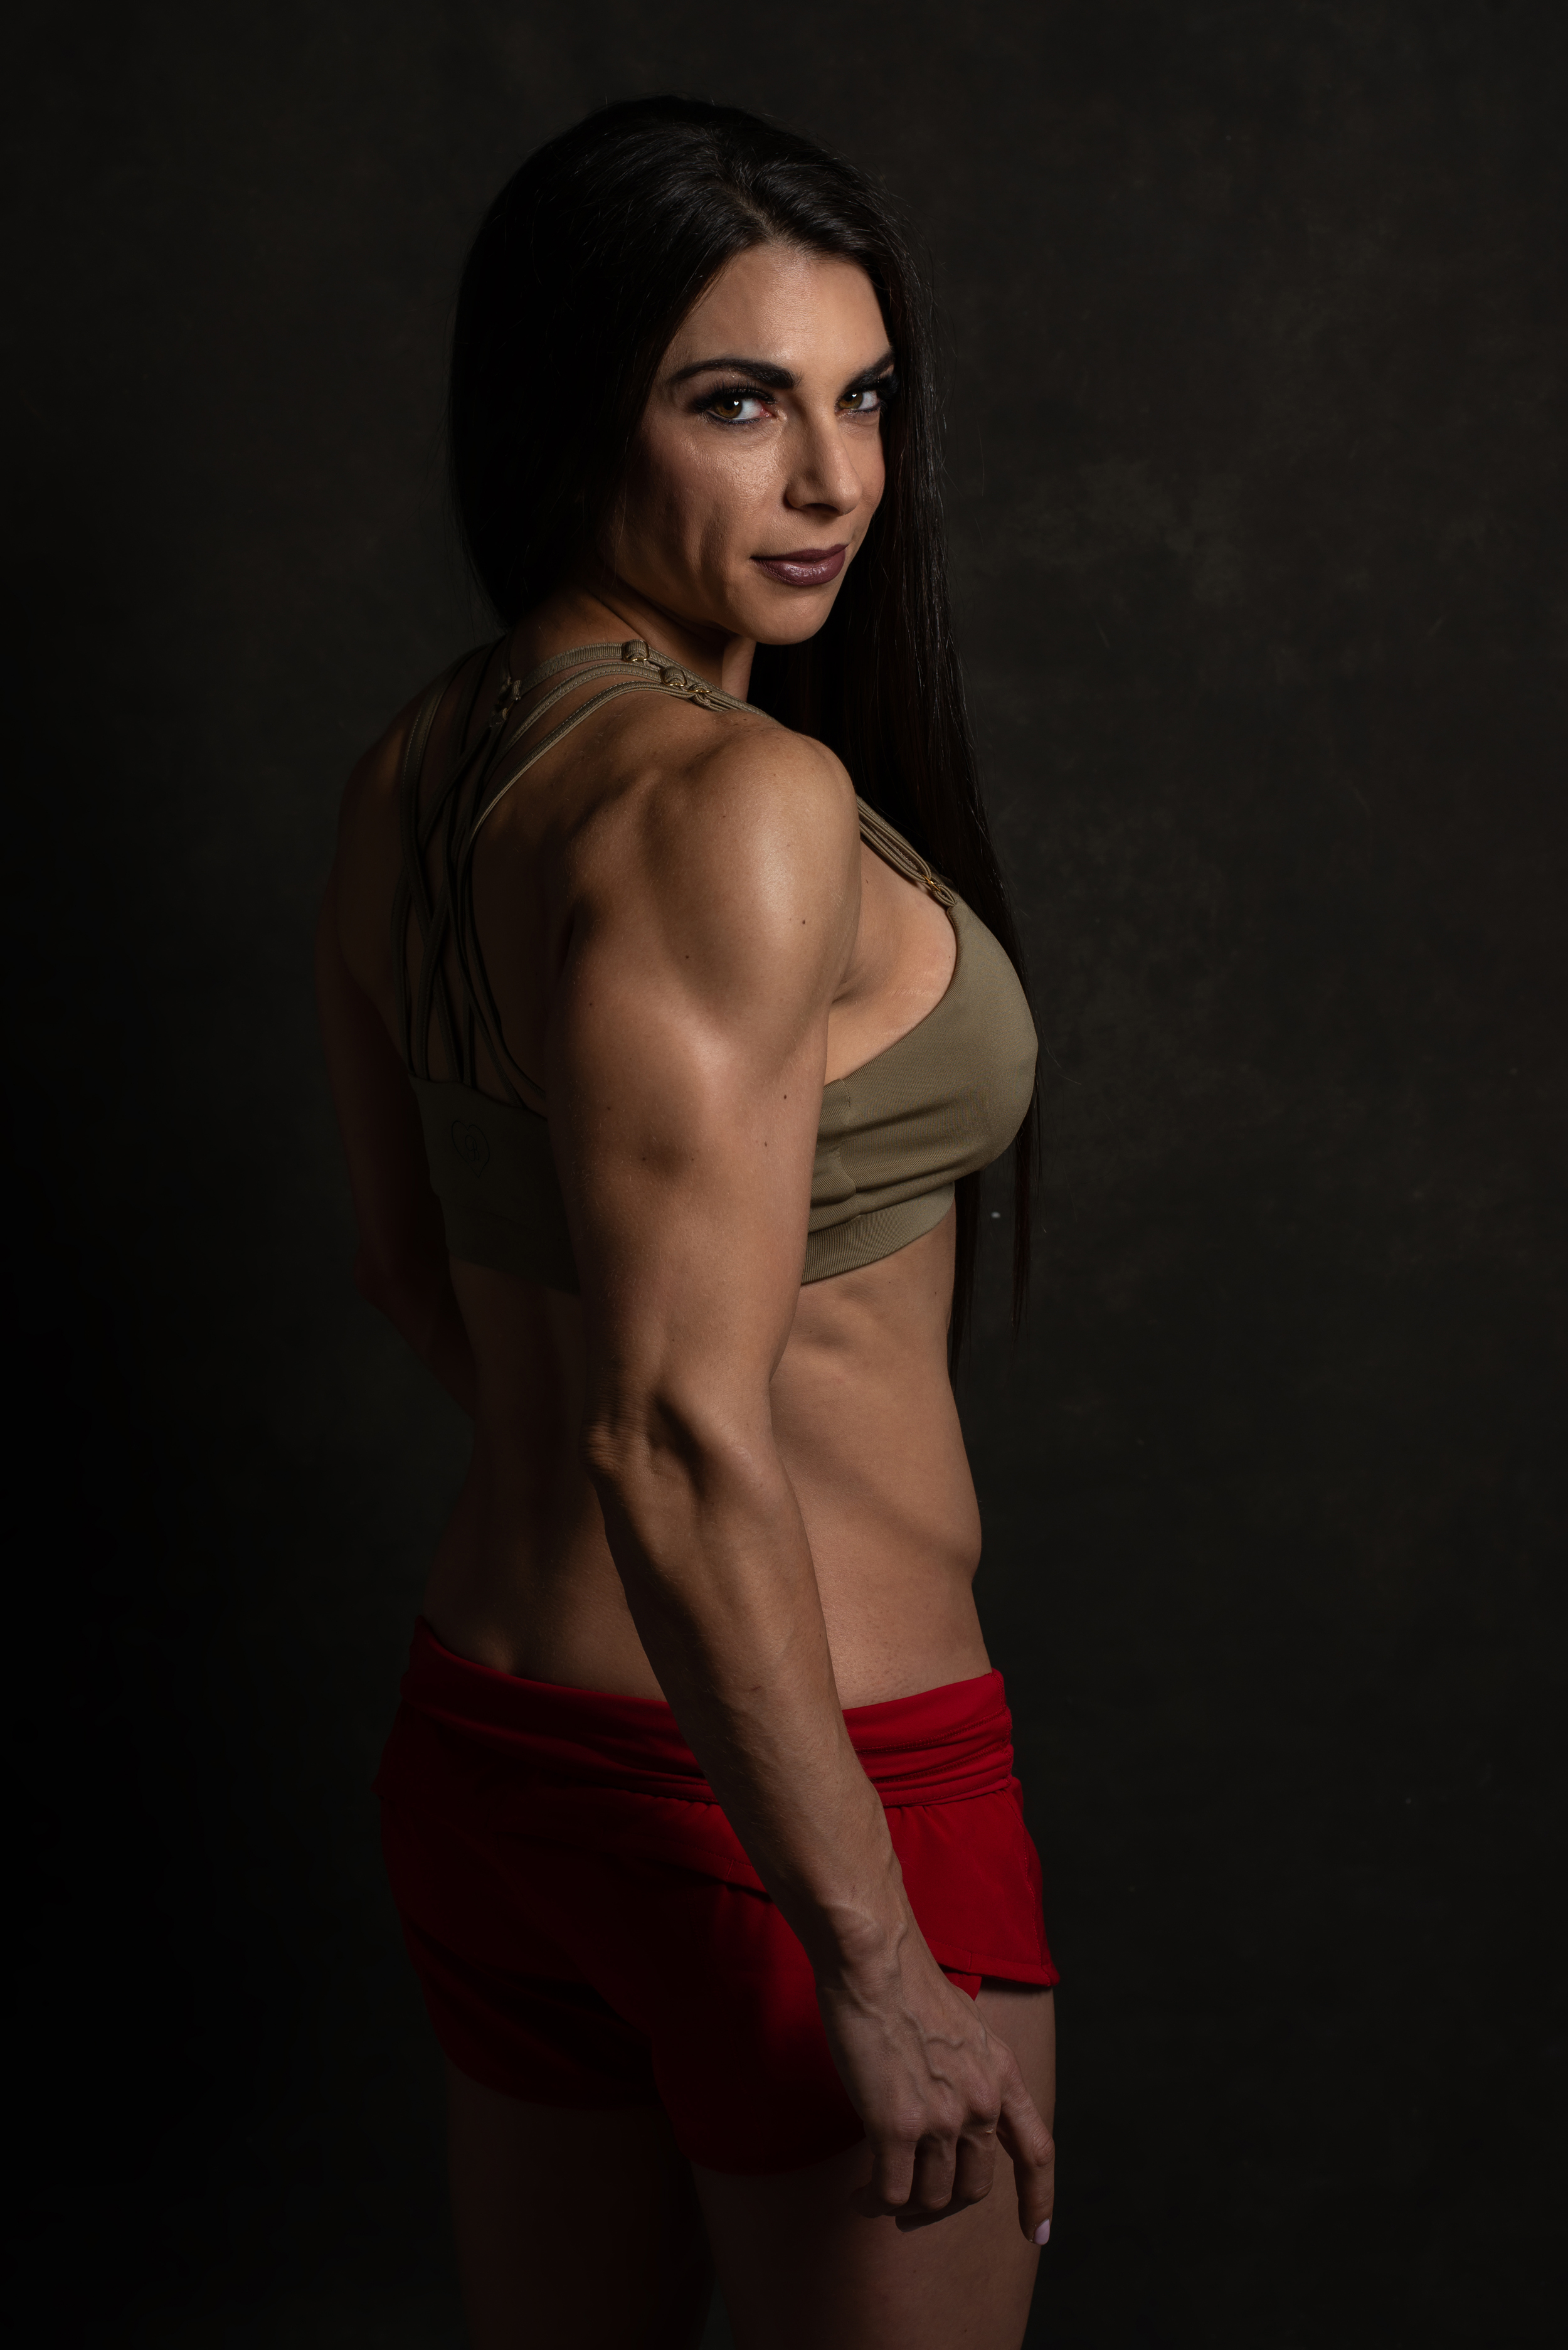 fitness-photography-south-florida-palm-beach-broward-portrait-headshot-photography-michele-anne-photography-05.jpg